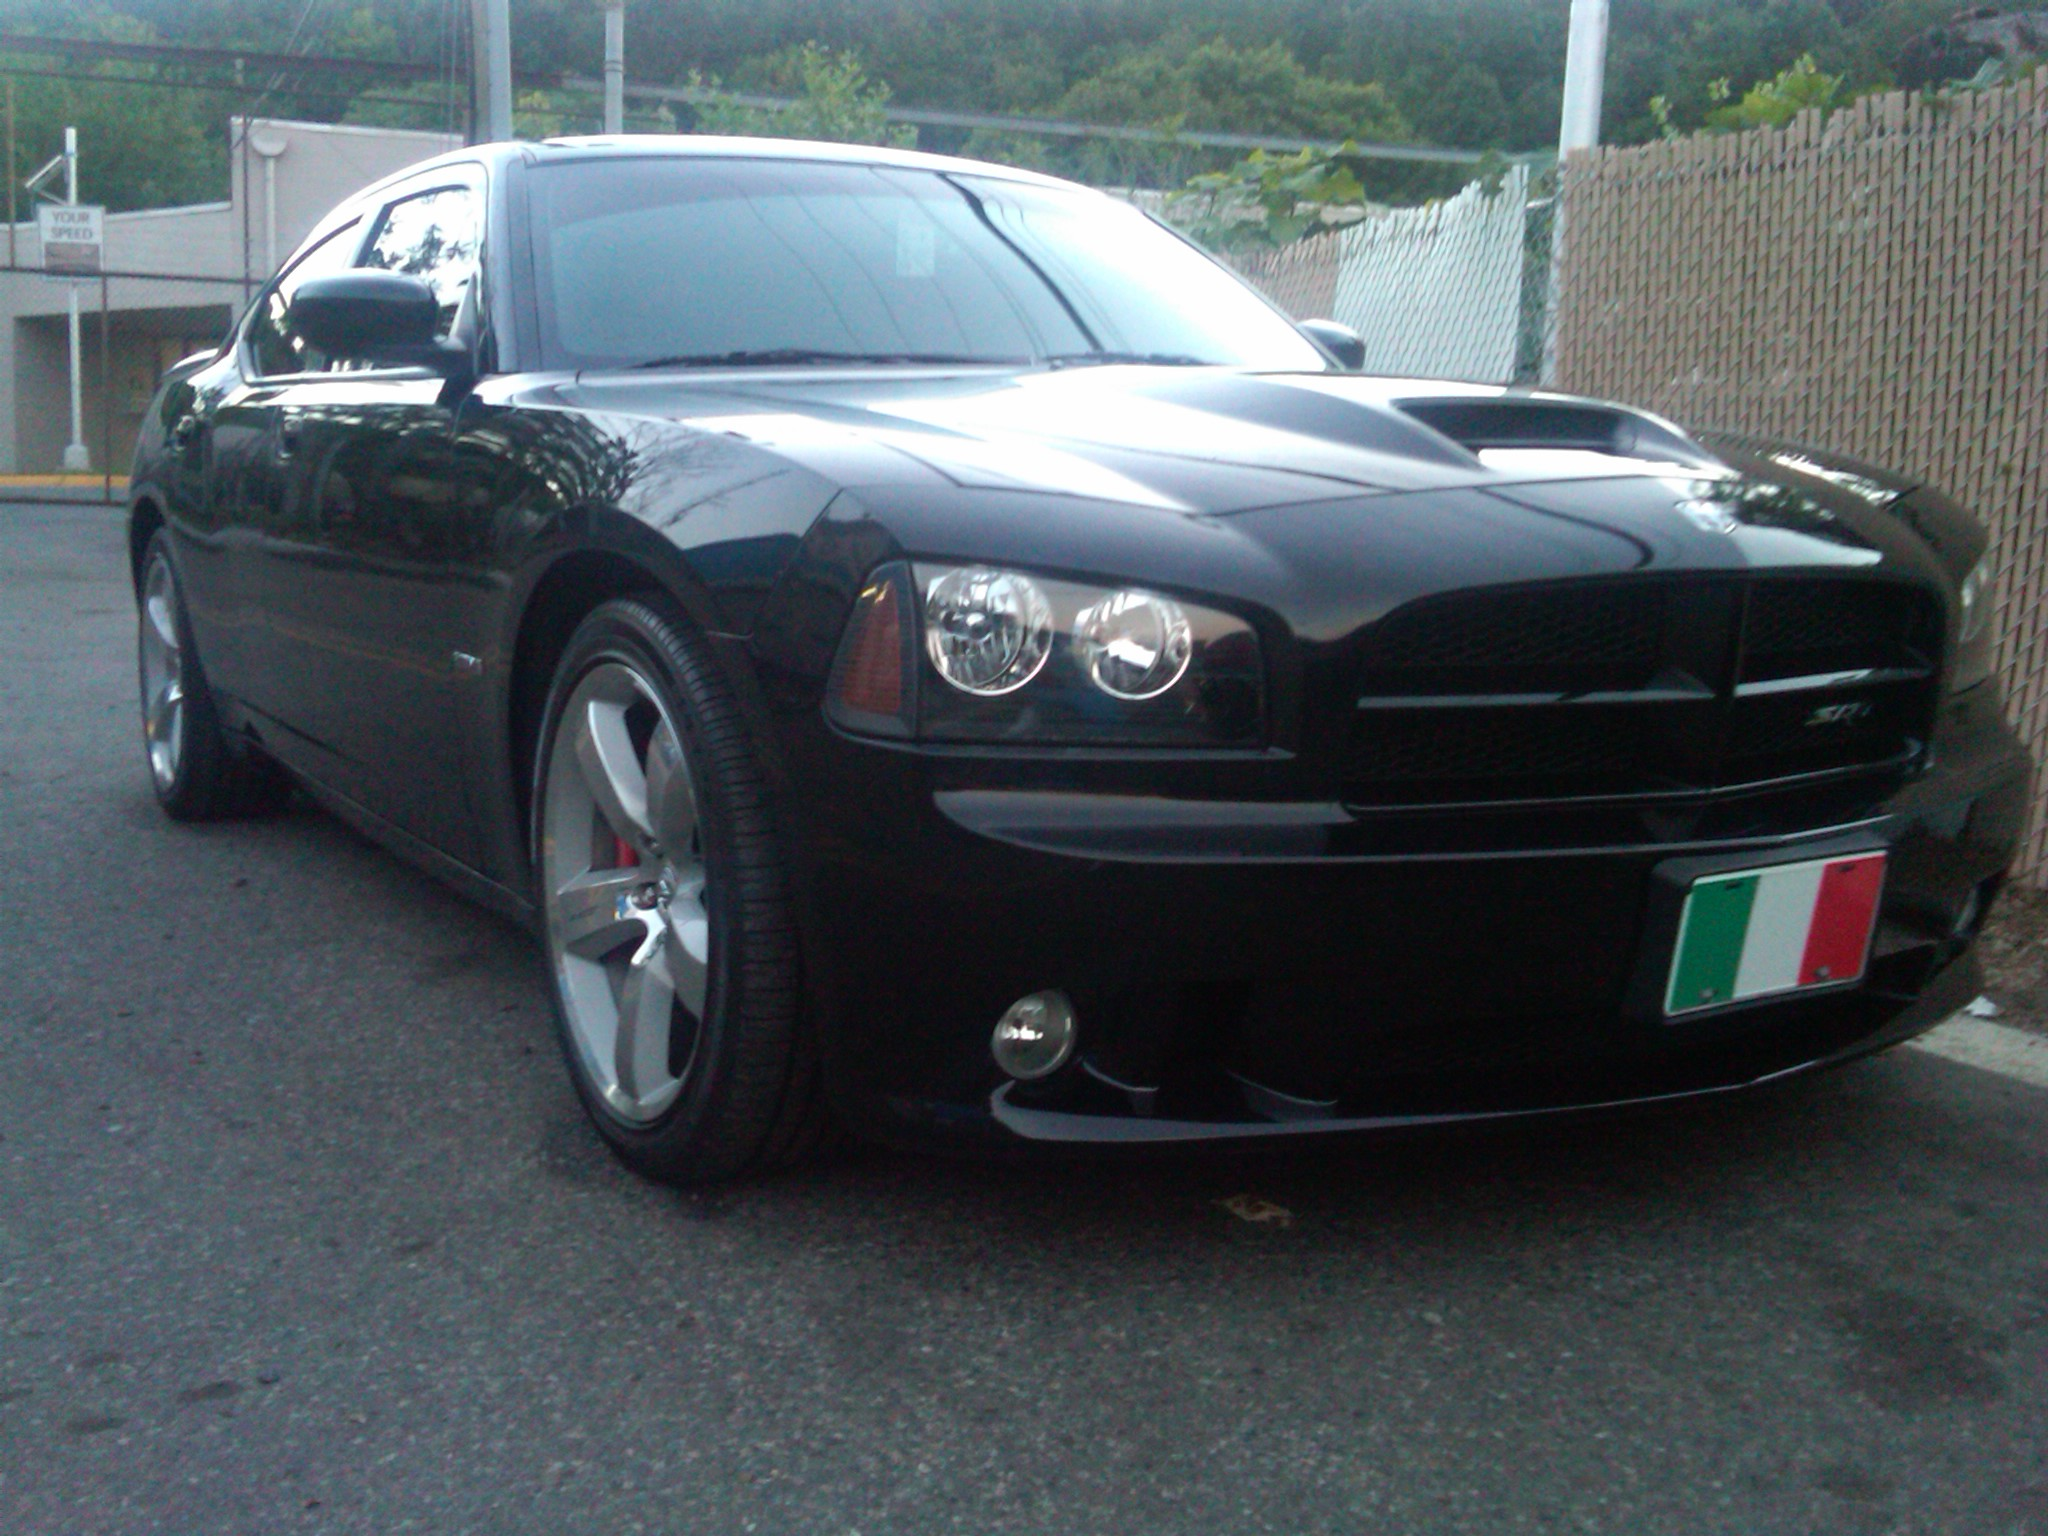 sale recall rt dodge parts performance charger ody elegant of for